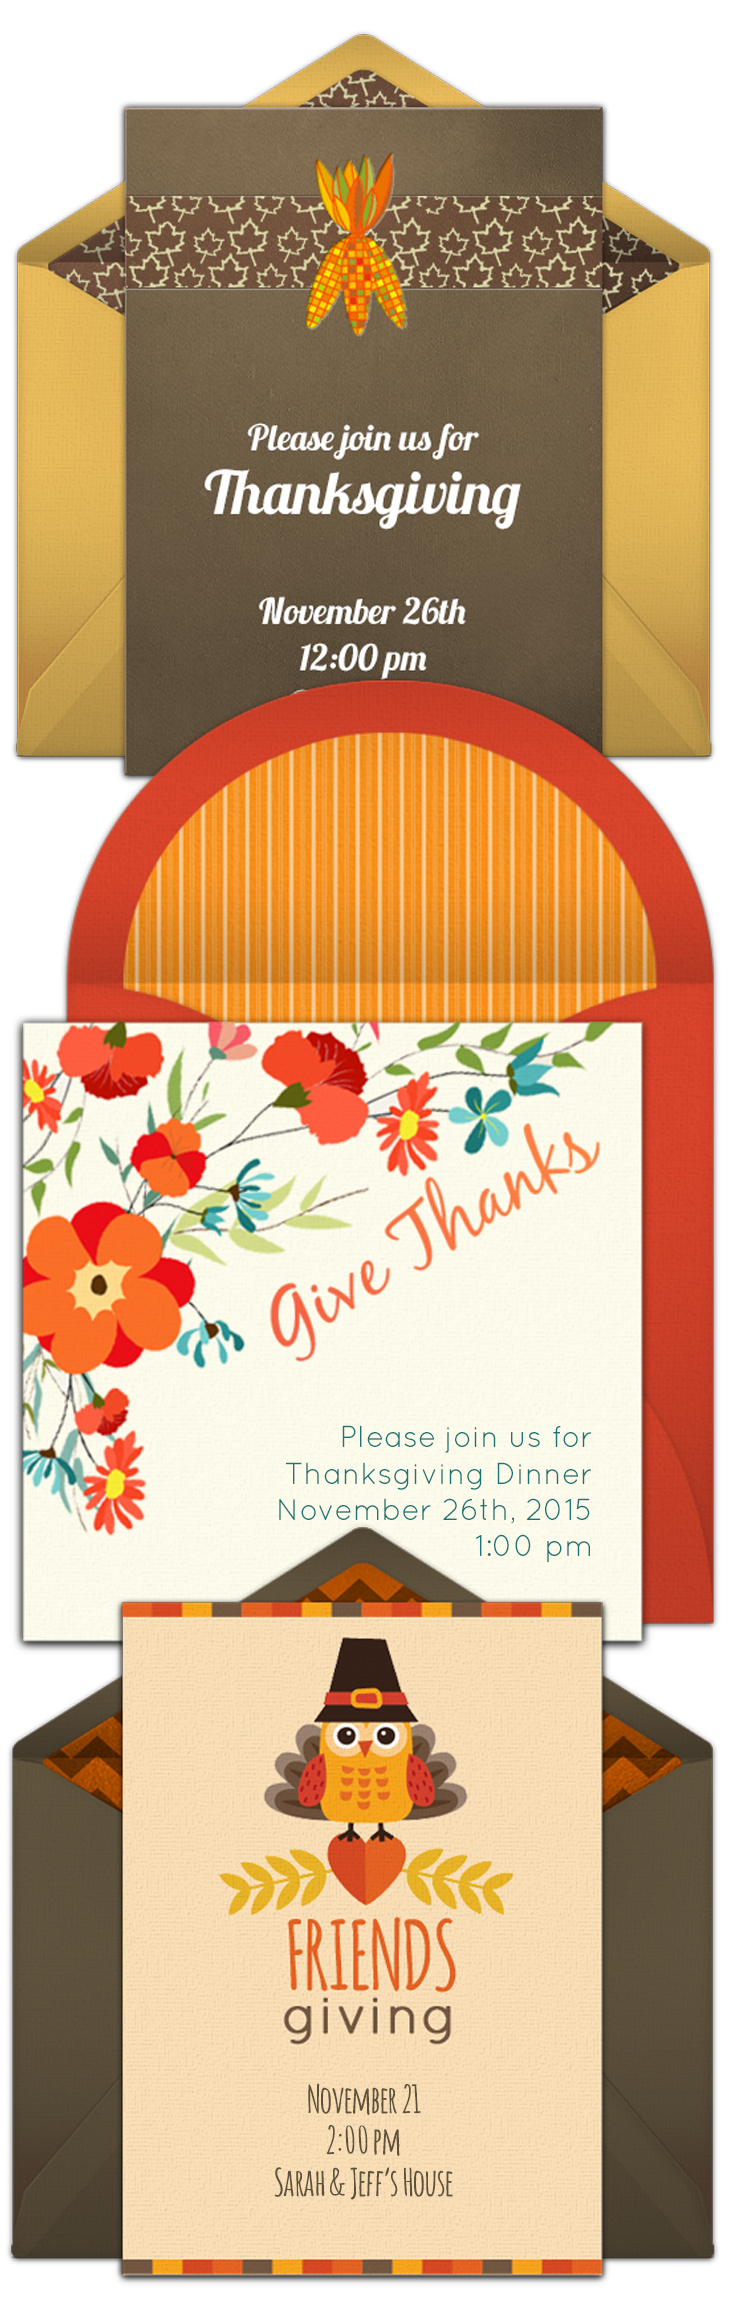 online invitations from thanksgiving celebrations pinterest